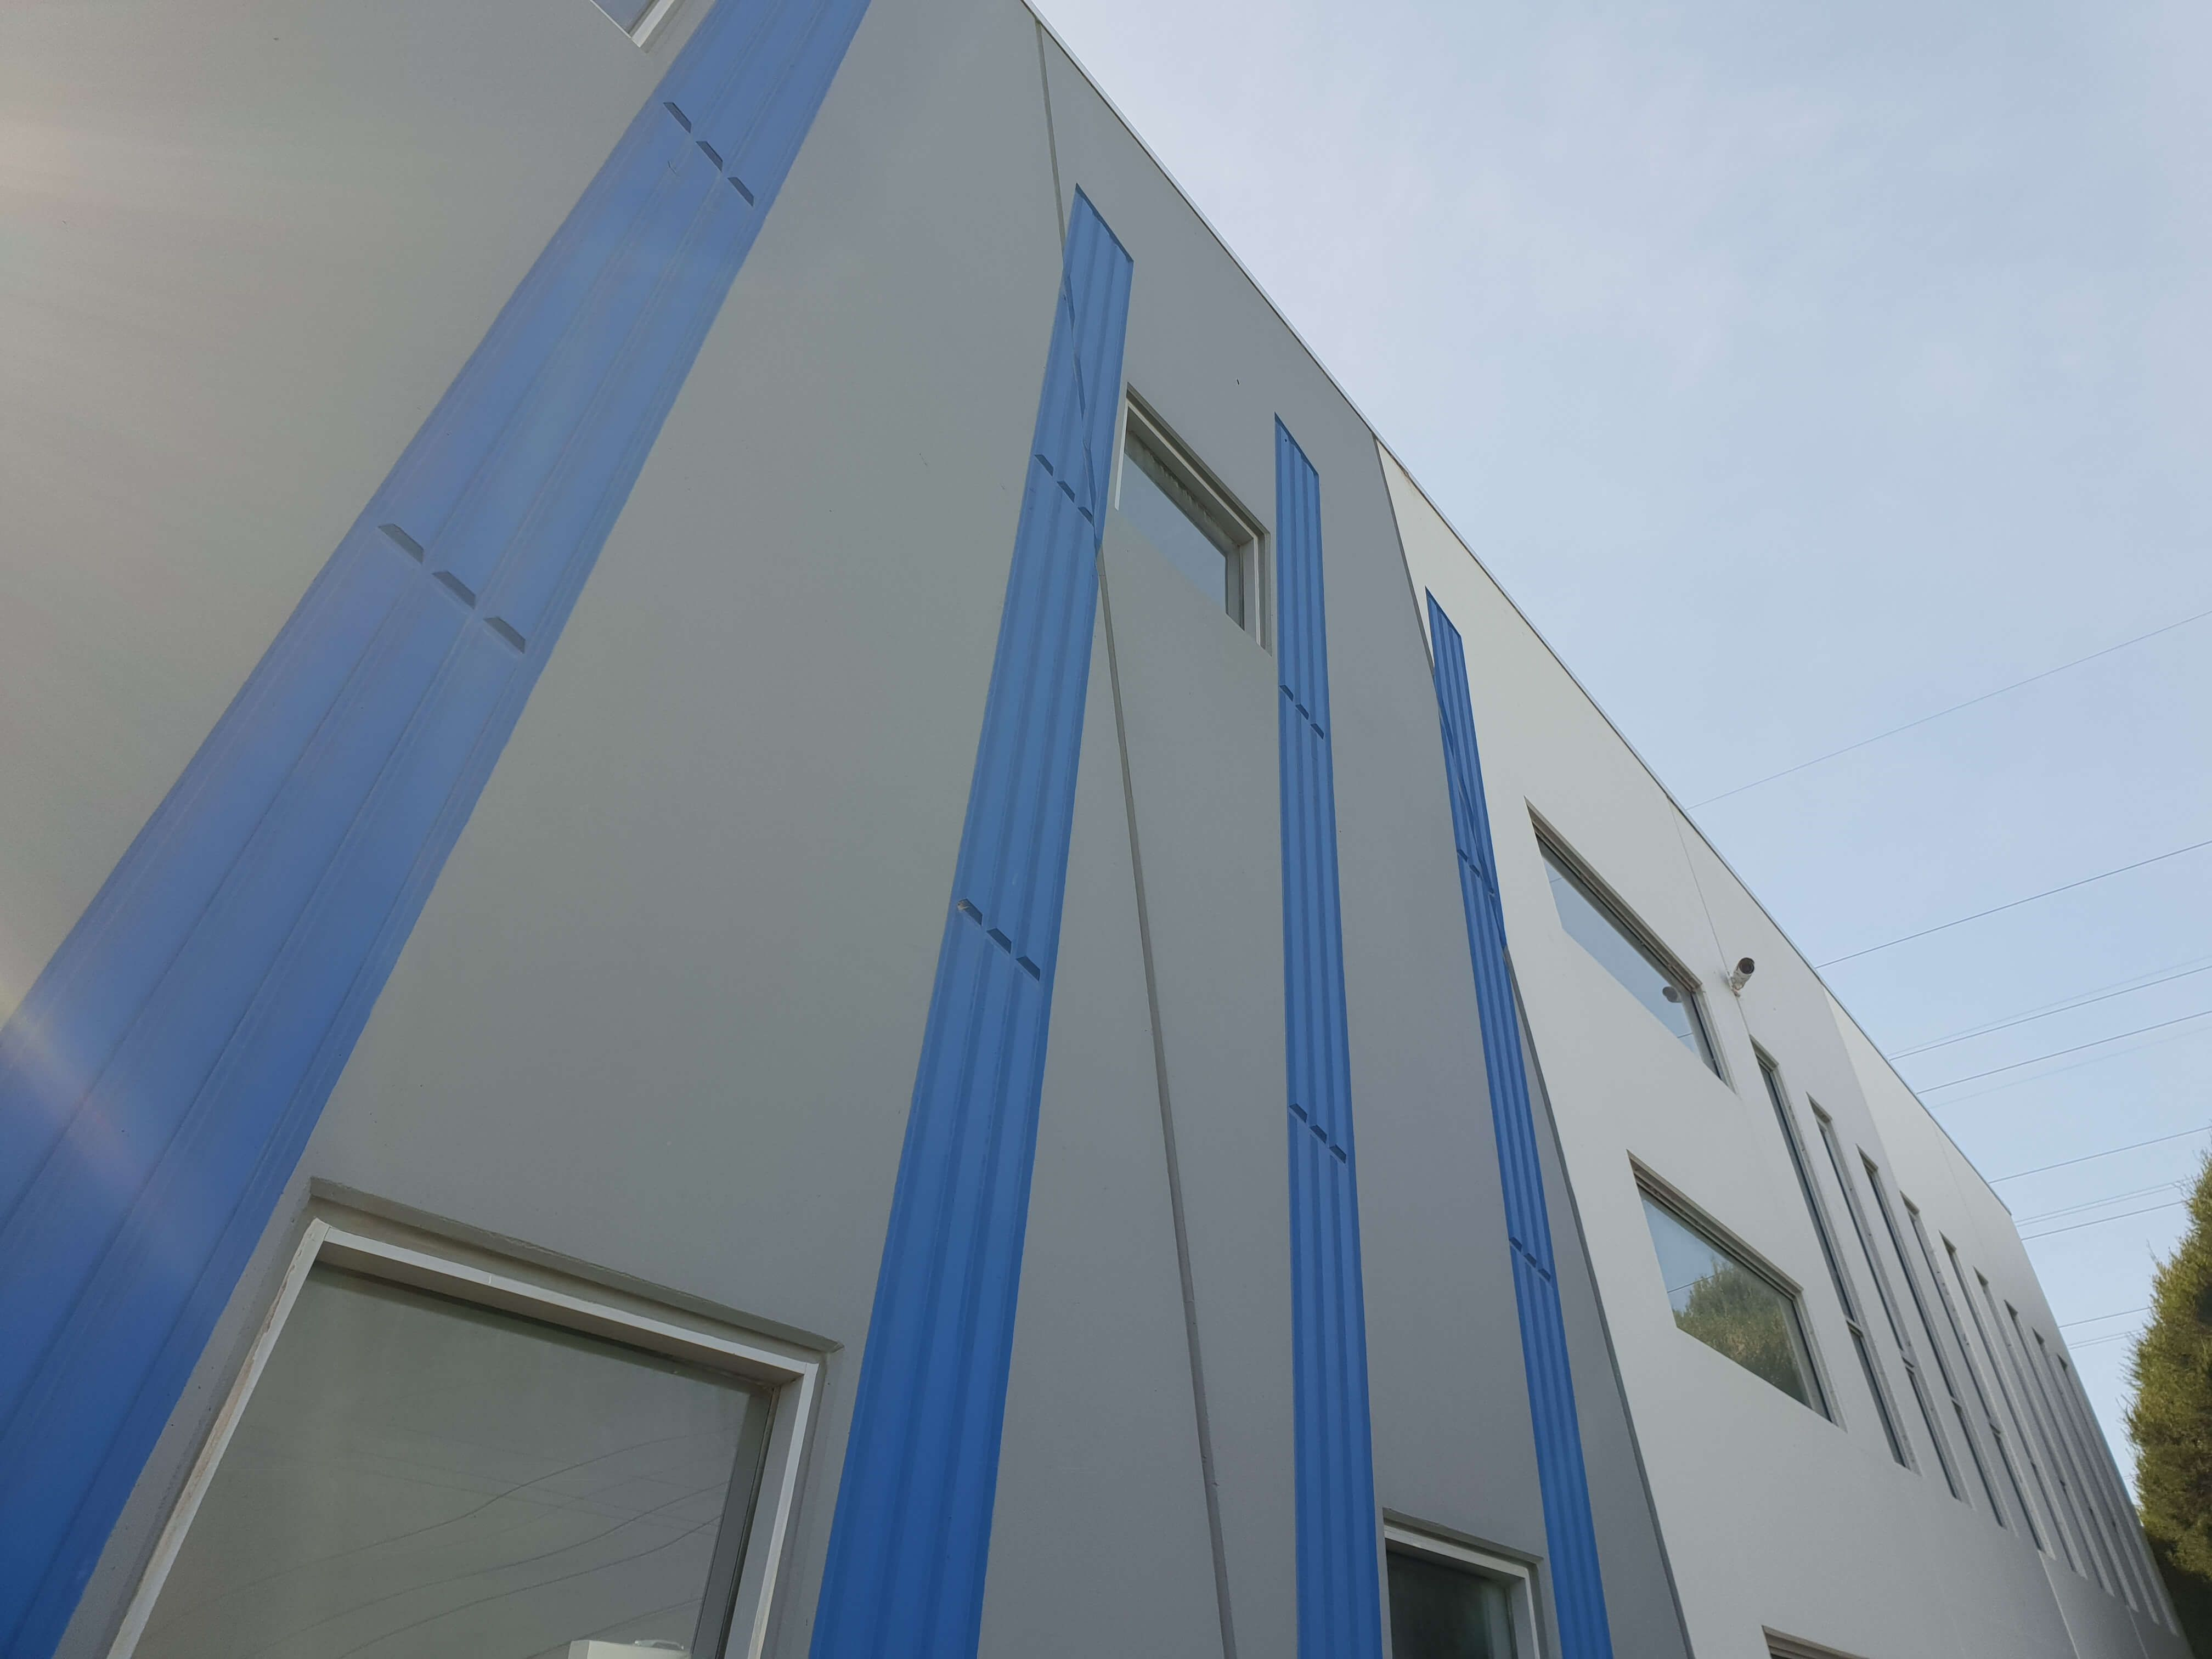 Get strong precast concrete panels in Geelong and its nearby